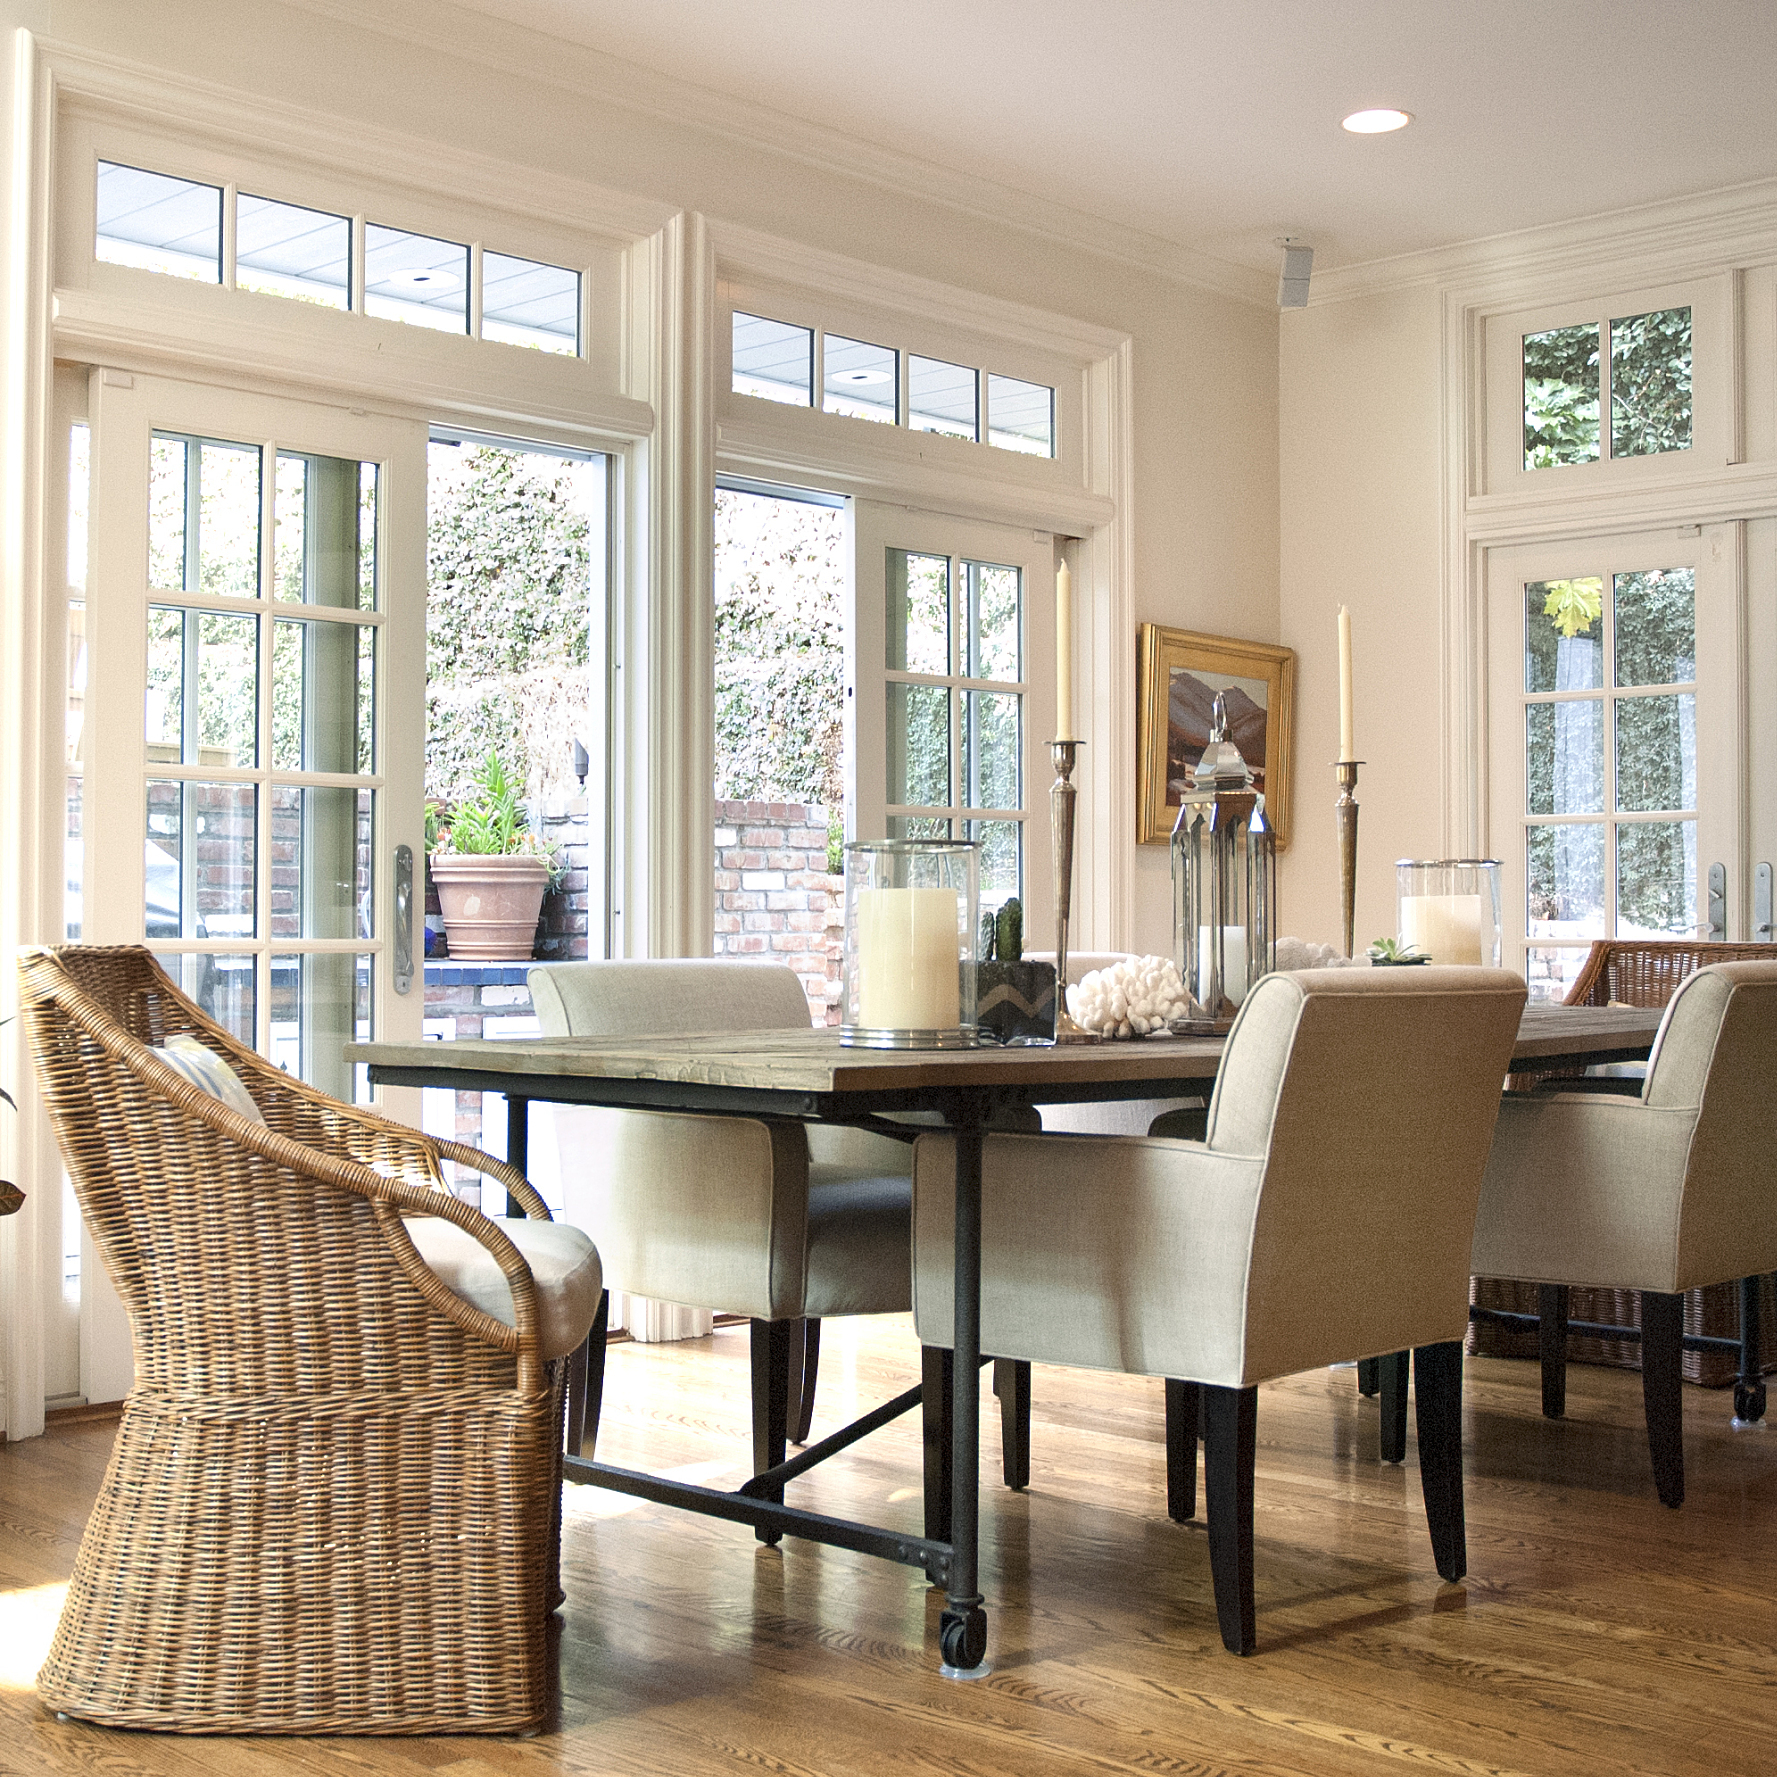 6 Dining Room Paint Colors We Absolutely Love | Martha Stewart